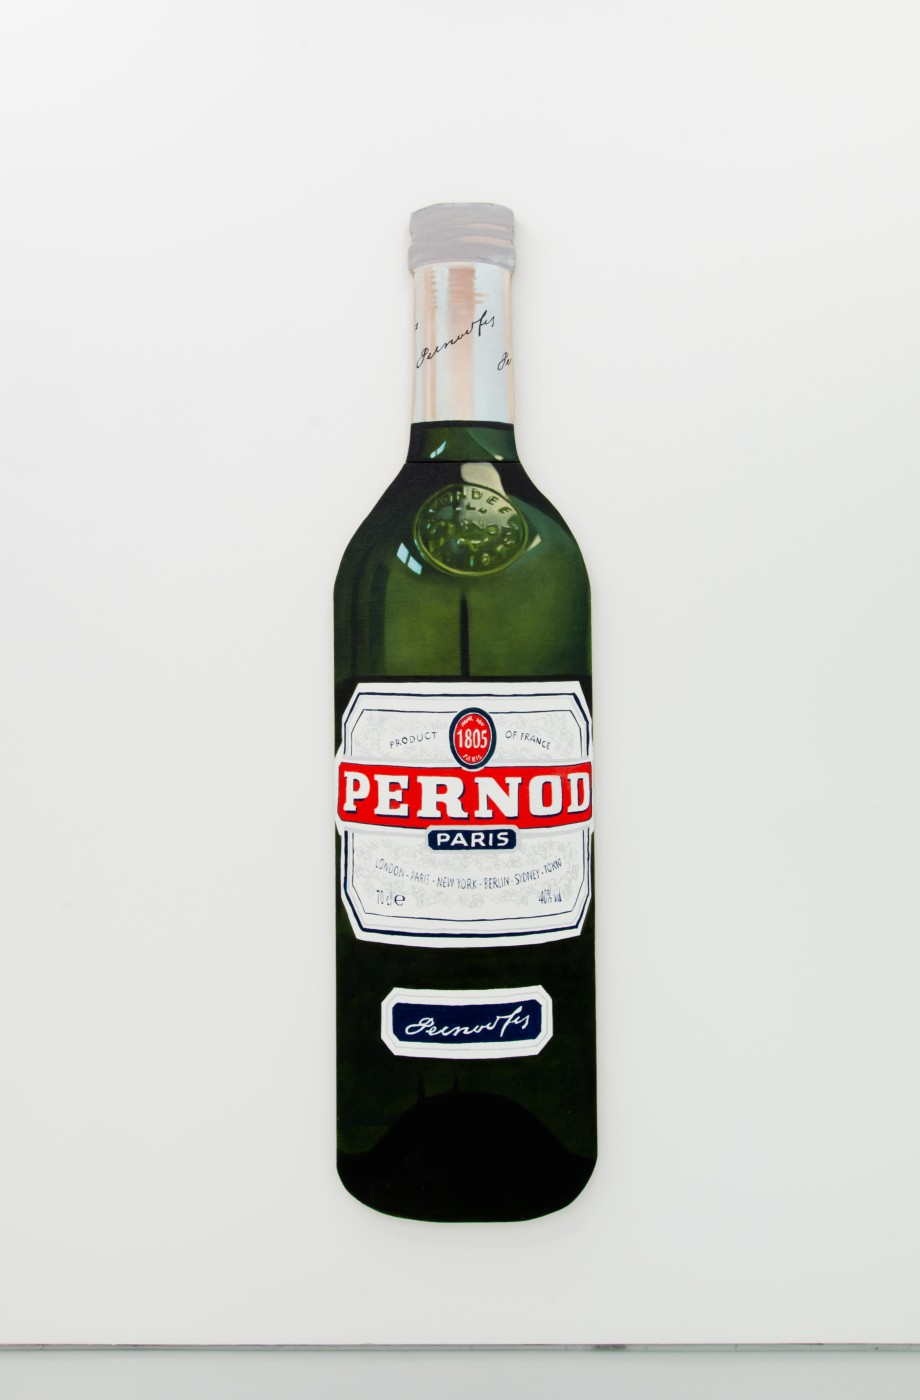 V.S.O.P.  Pernod</I>, 2017 Oil on linen stretched onto shaped wood board 206,5 x 52,5 cm / 81.3 x 20.7 in  PENTTI MONKKONEN